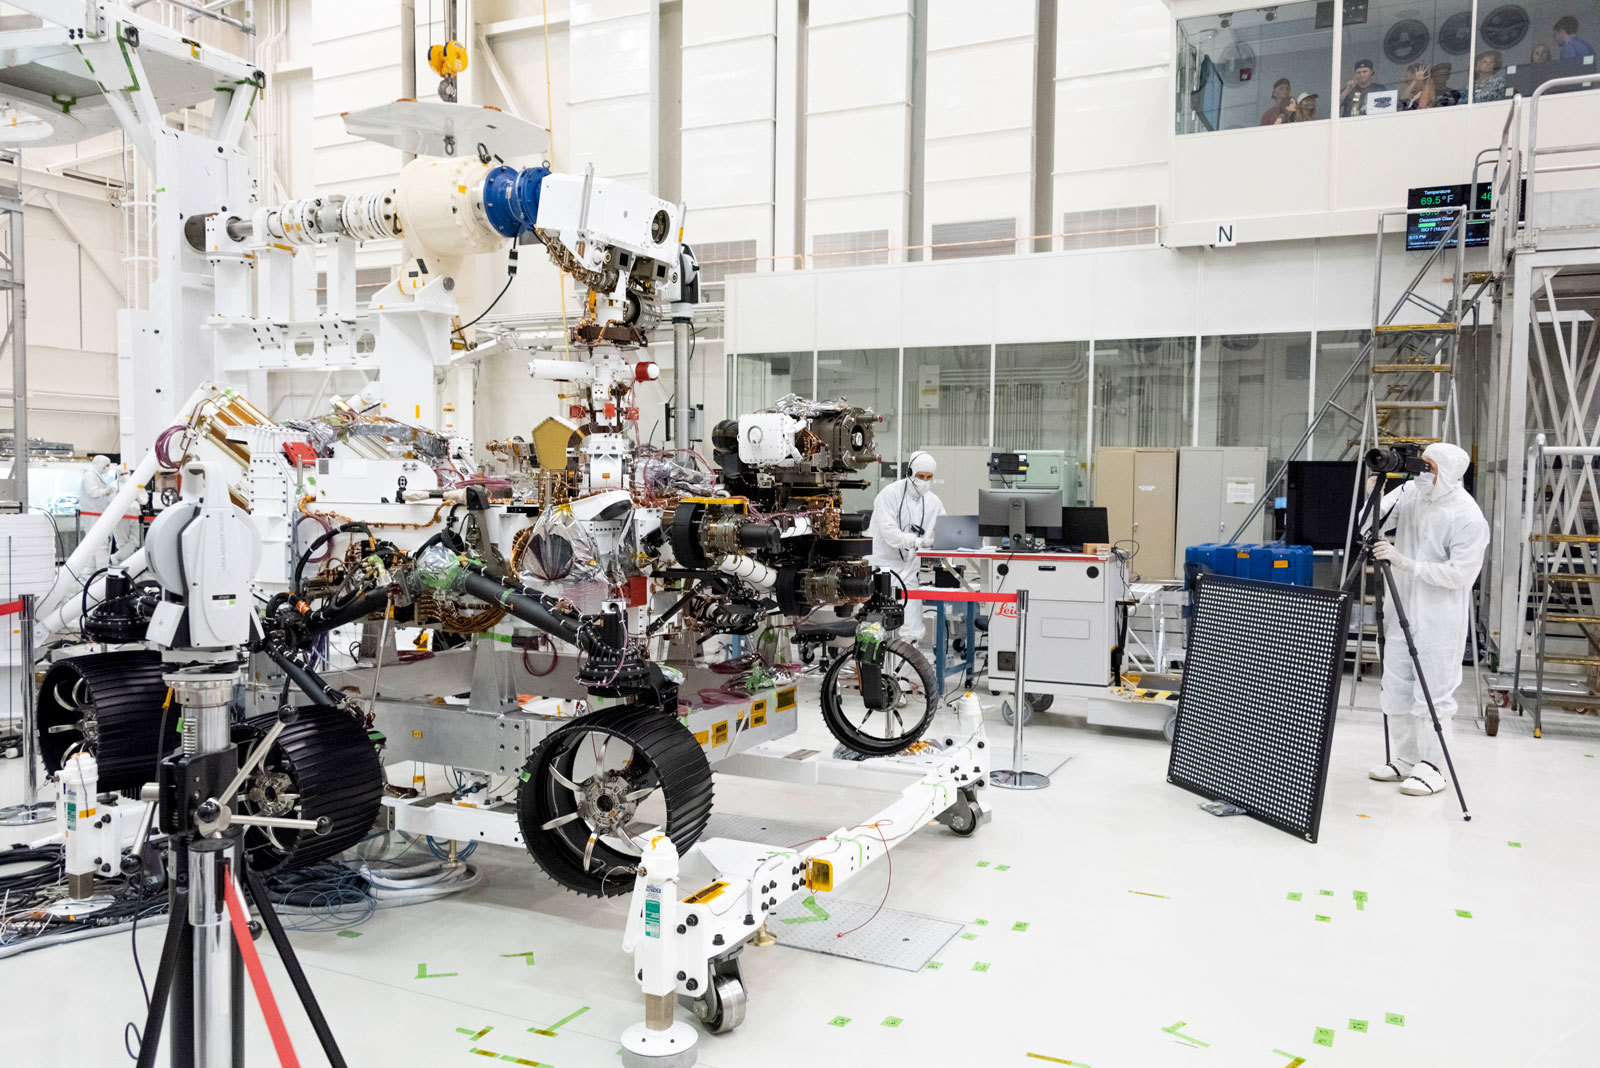 In this image, engineers test cameras on the top of the Mars 2020 rover's mast and front chassis. The image was taken on July 23, 2019, in the Spacecraft Assembly Facility's High Bay 1 at NASA's Jet Propulsion Laboratory in Pasadena, California.